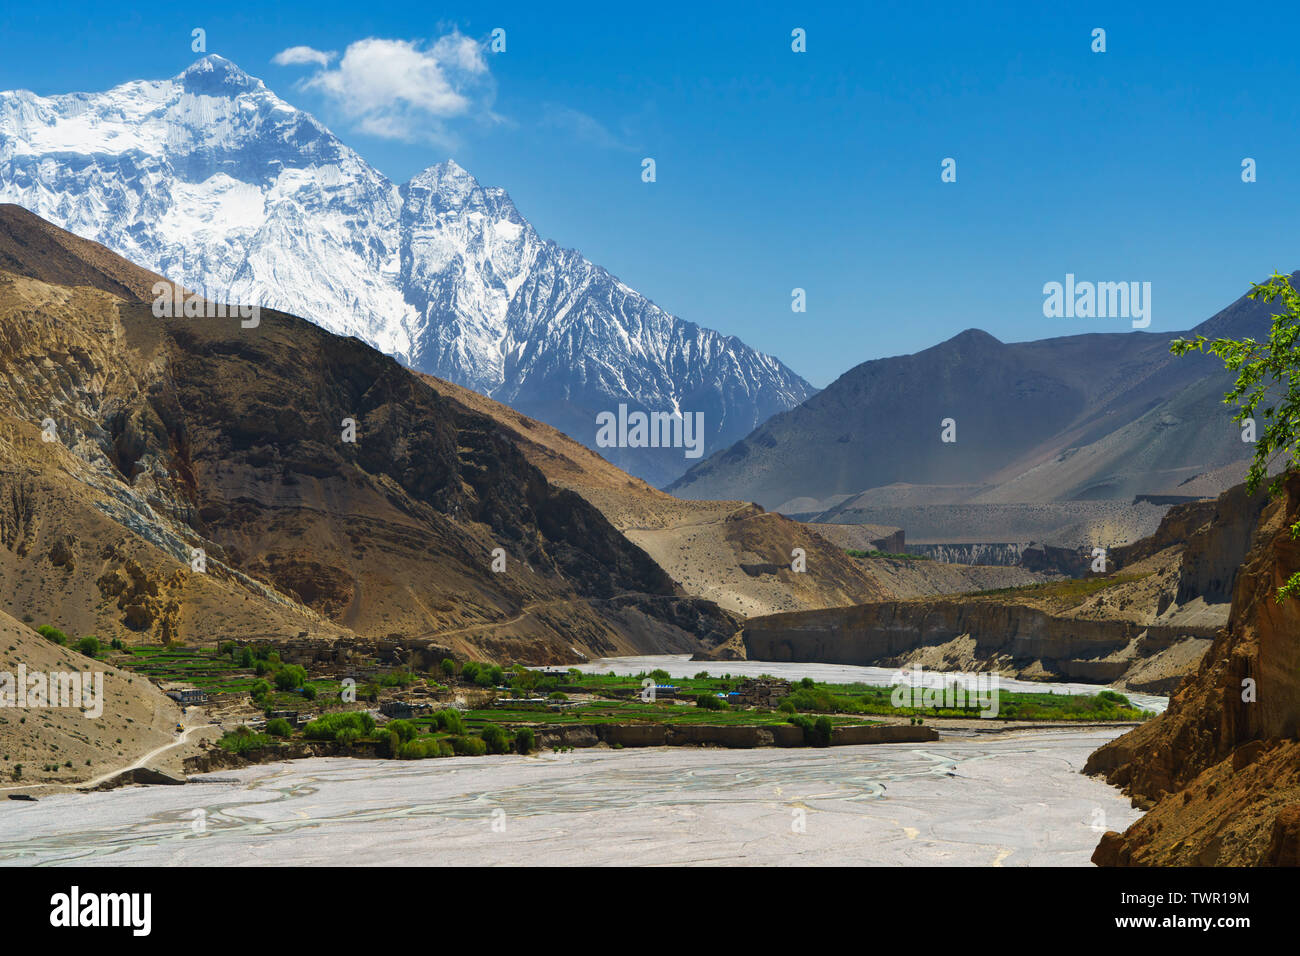 viewed-from-a-distance-ancient-village-of-chuksang-in-the-kali-gandaki-valley-upper-mustang-region-nepal-nilgiri-north-7061m-in-the-background-TWR19M.jpg